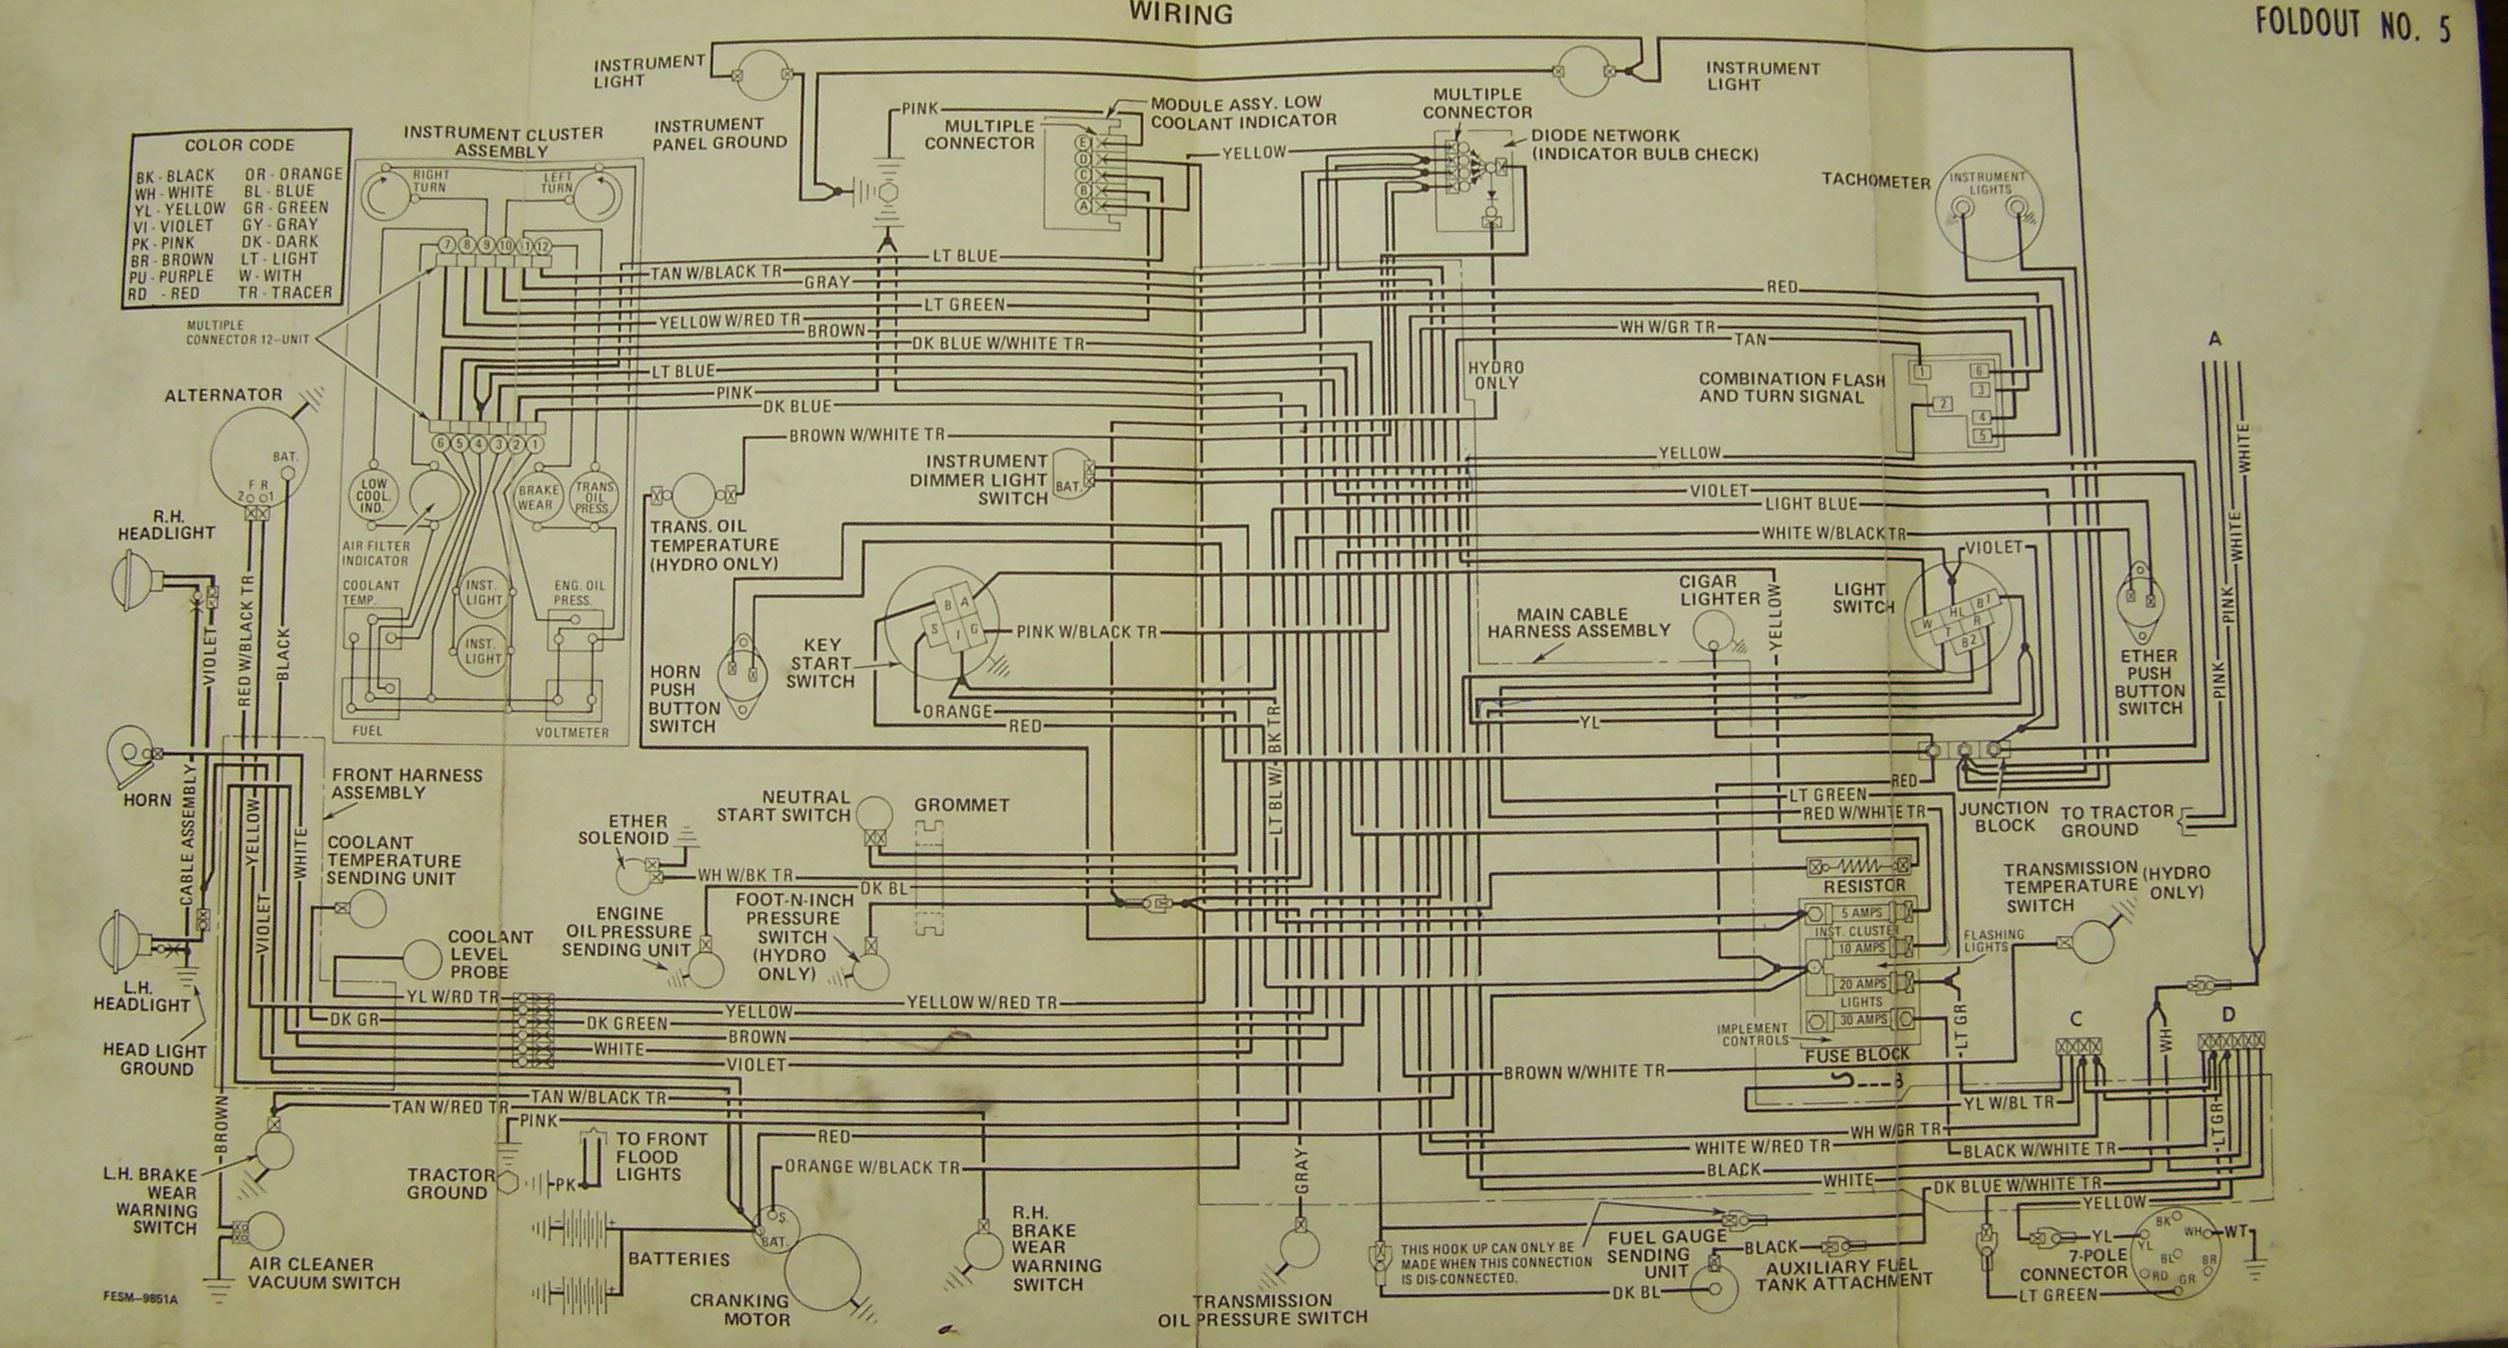 86series5 ih 574 wiring diagram case 430 tractor wiring diagram \u2022 wiring International 4700 Wiring Diagram PDF at bayanpartner.co